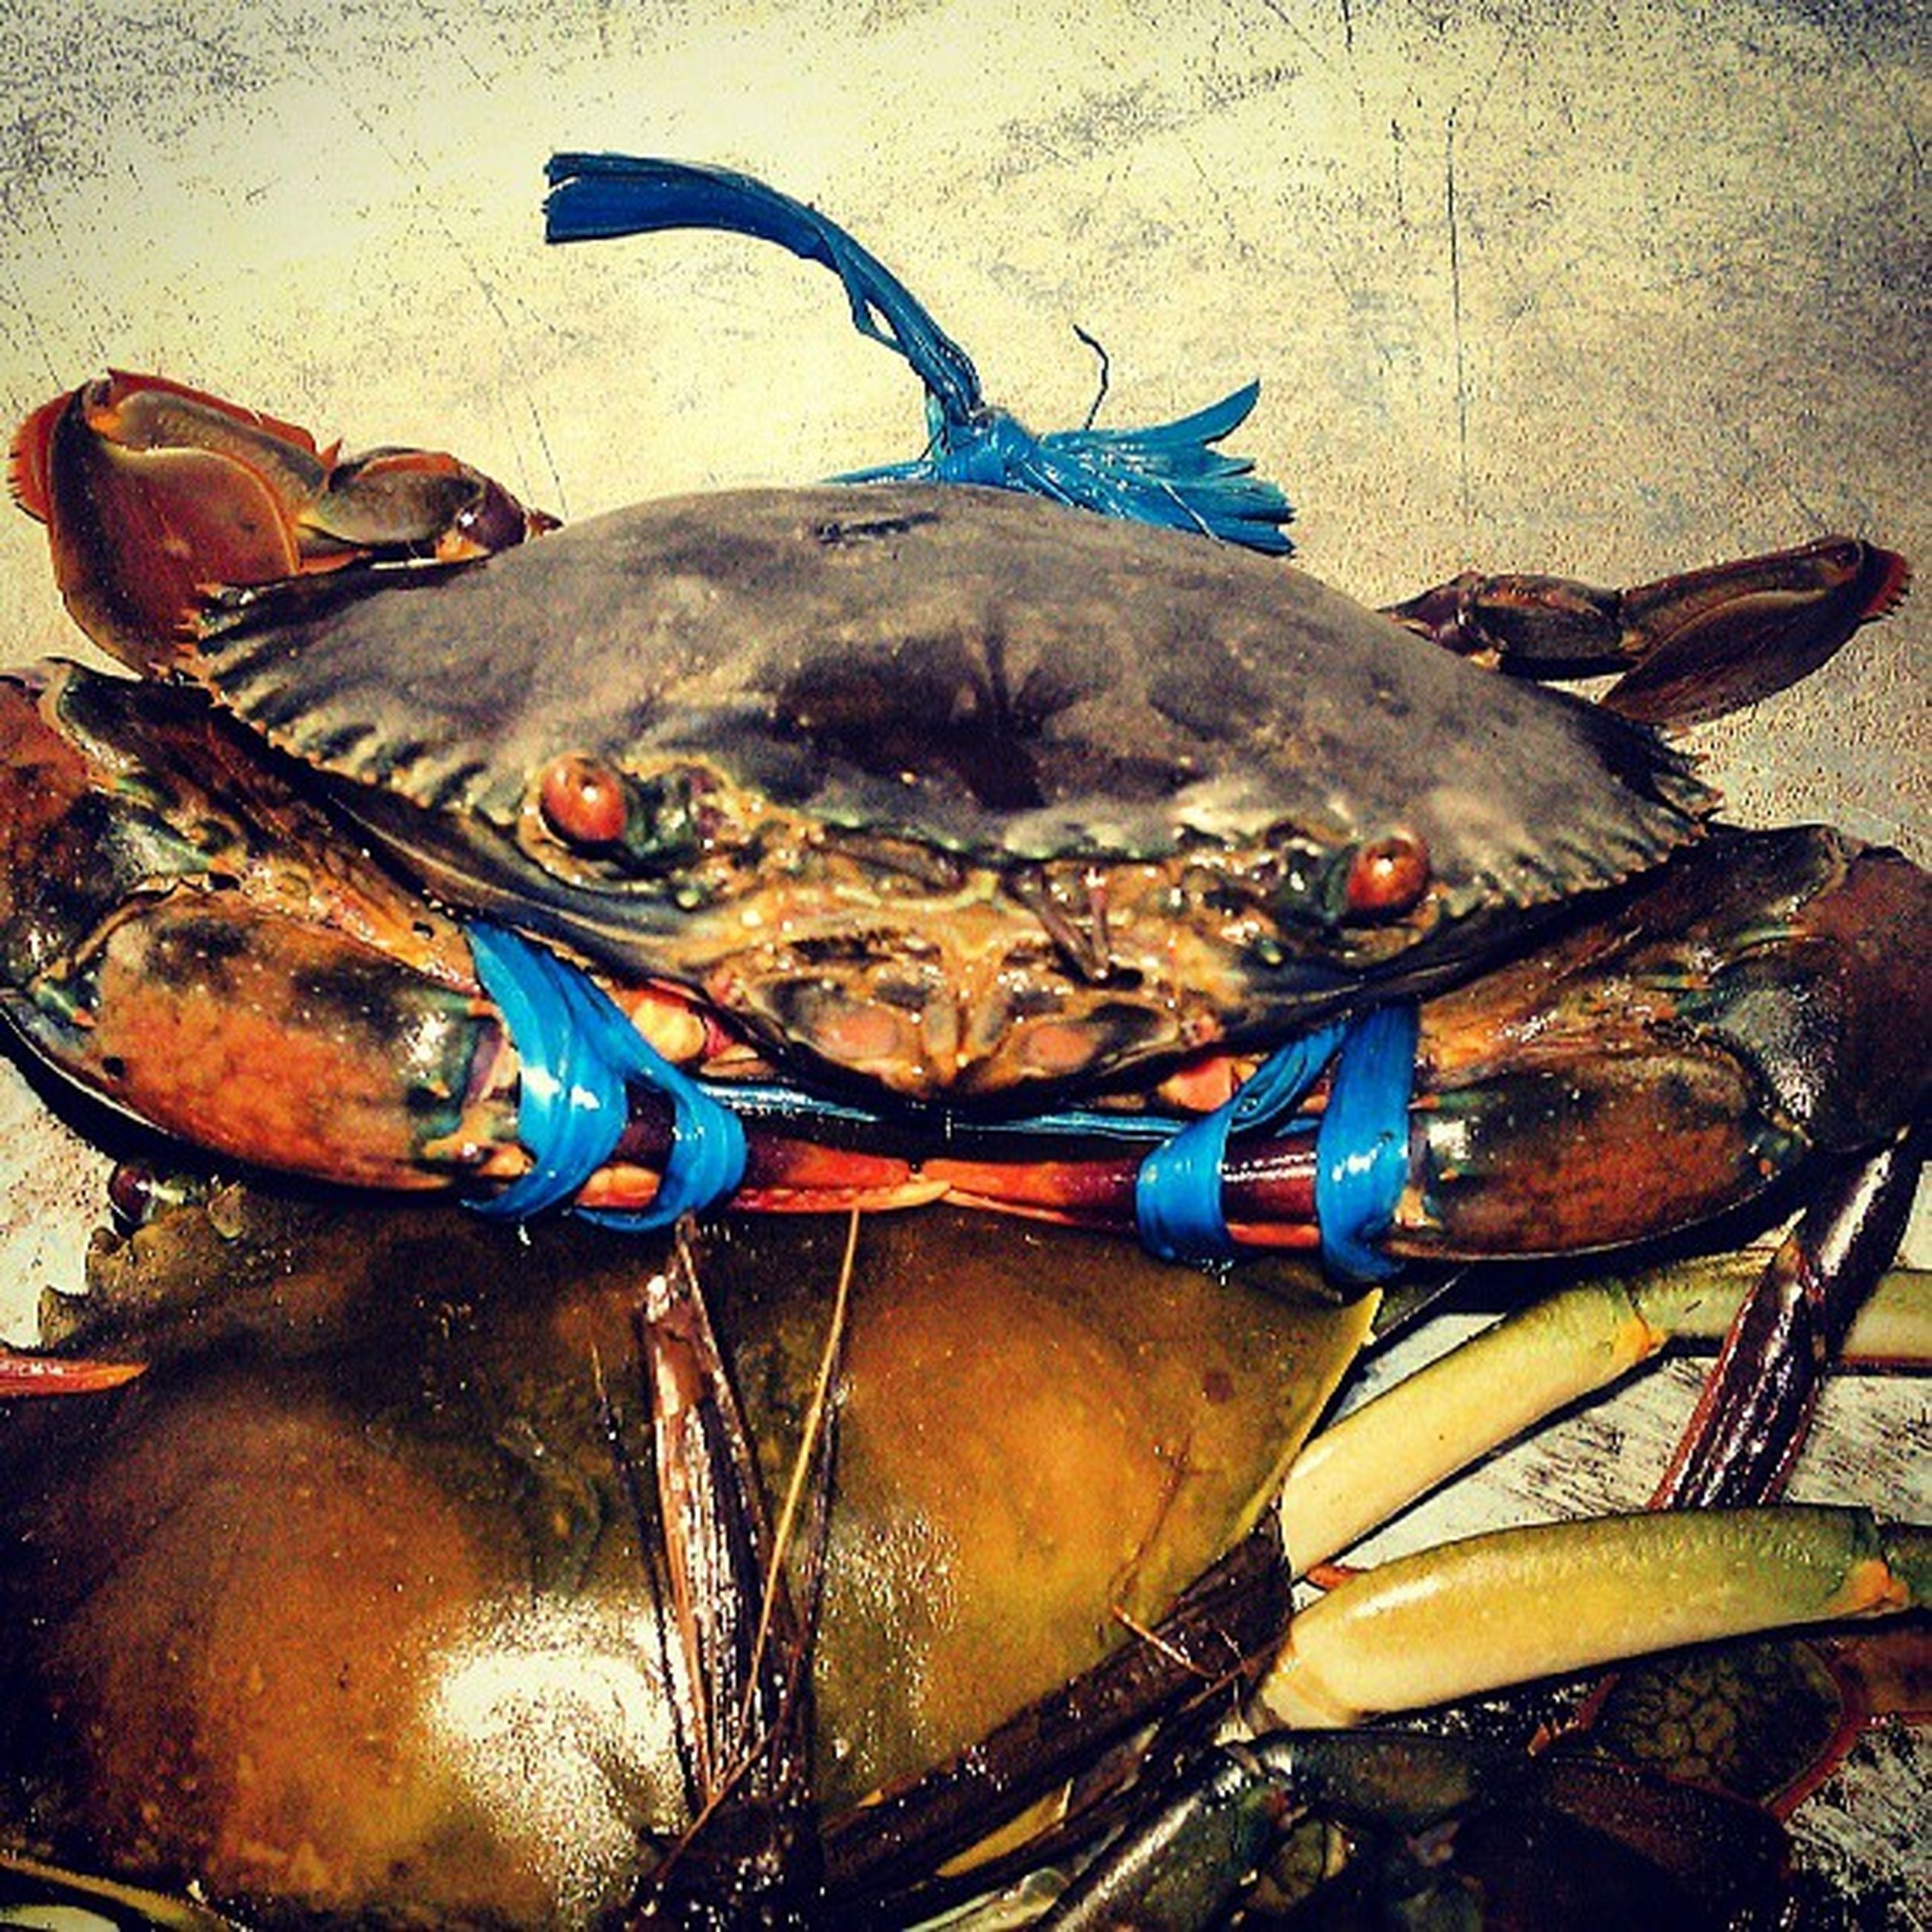 animal themes, fish, one animal, animals in the wild, wildlife, seafood, food and drink, high angle view, food, dead animal, indoors, water, no people, day, two animals, close-up, crab, animals in captivity, sea life